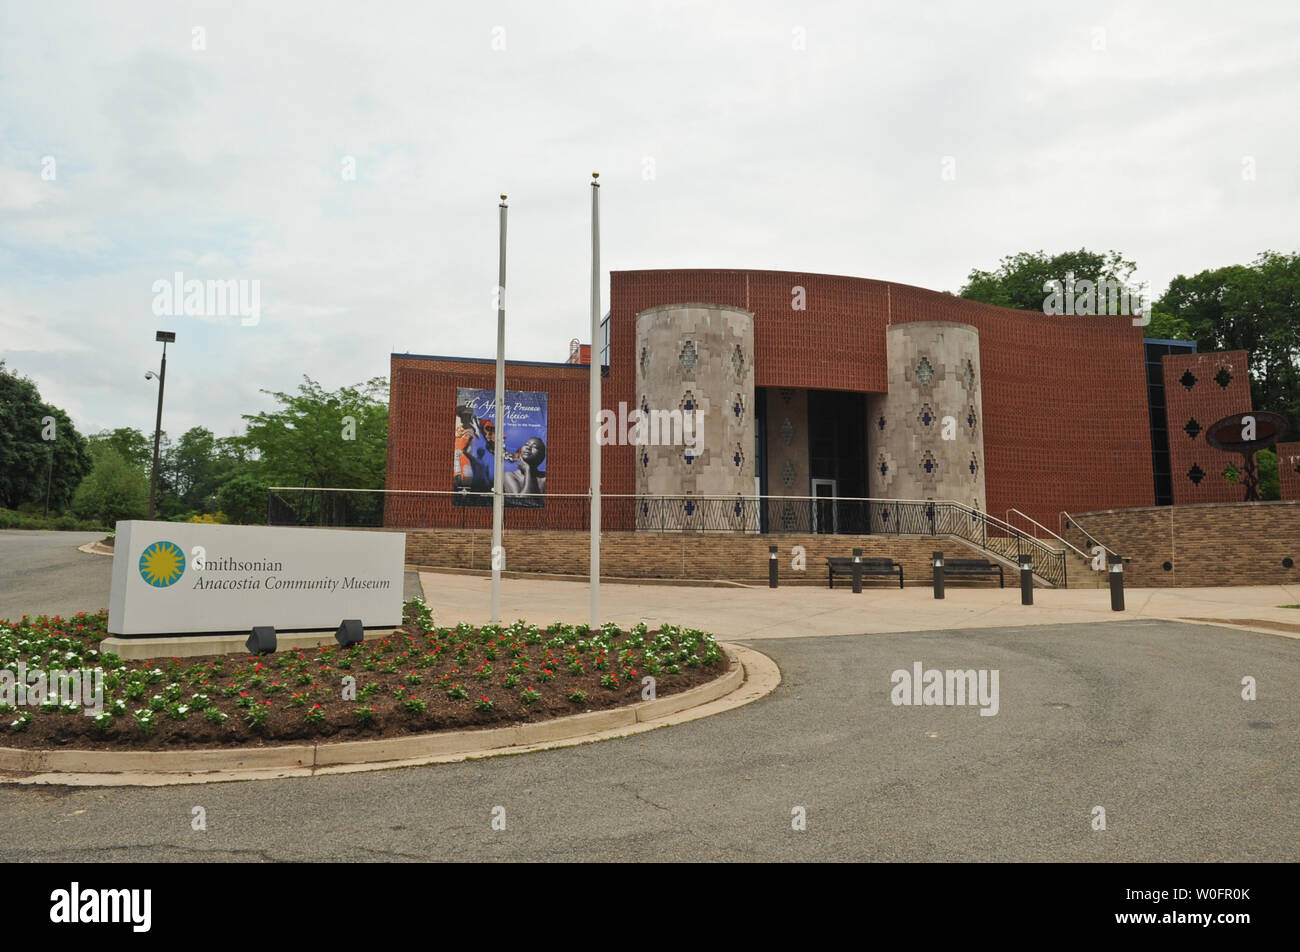 The Smithsonian Anacostia Community Museum is seen in Washington on May 22, 2010. UPI/Alexis C. Glenn Stock Photo